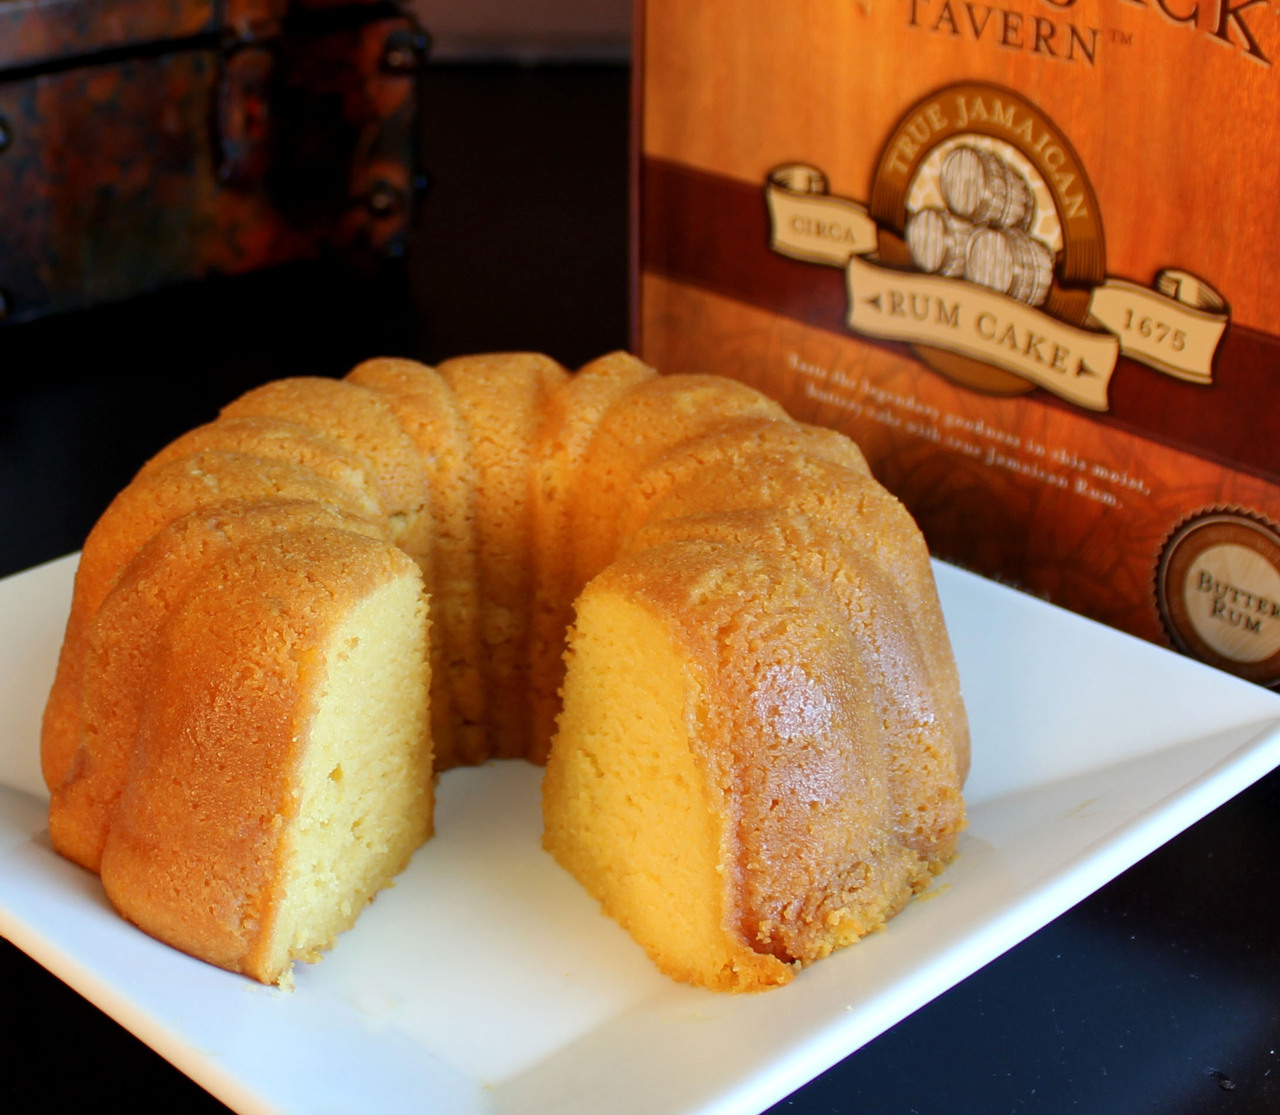 Carolina Coffee Wicked Jack's Tavern™ Butter Rum Cake